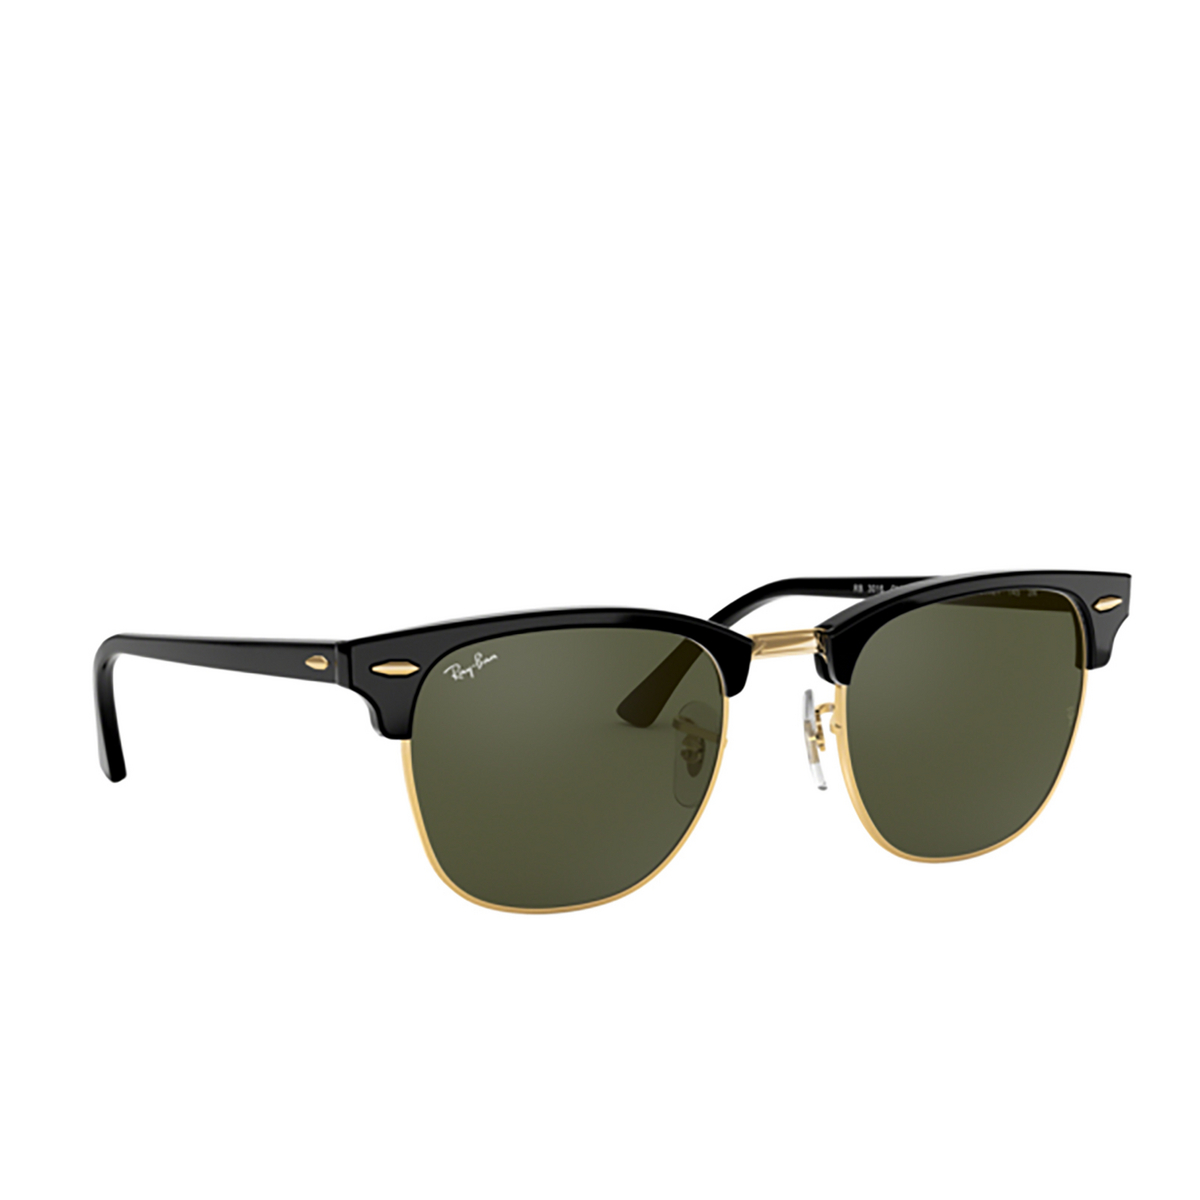 Ray-Ban® : Clubmaster RB3016 color Black On Arista W0365.